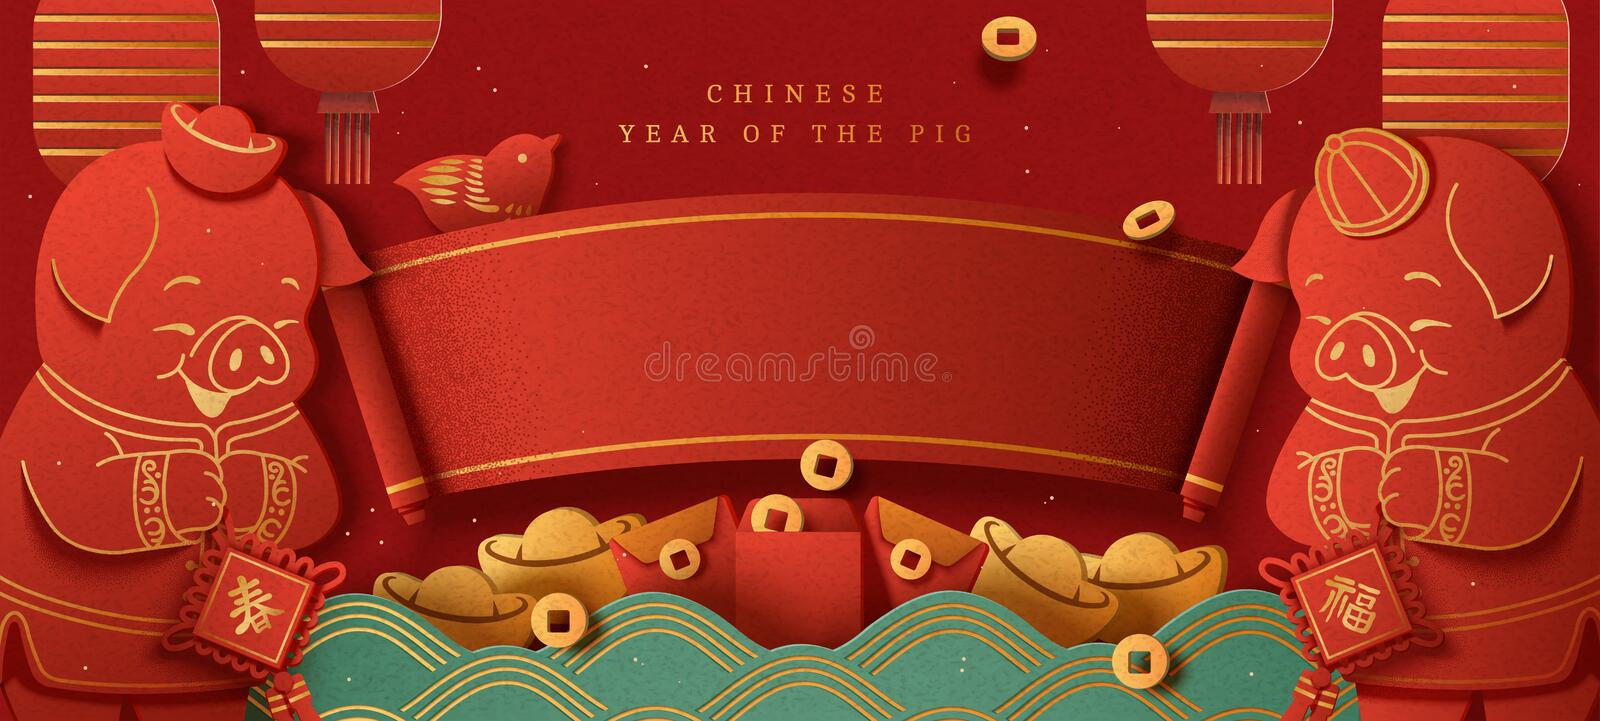 Year of the pig poster design. With cute piggy greeting to each other in paper art style, blank spring couplets for design vector illustration